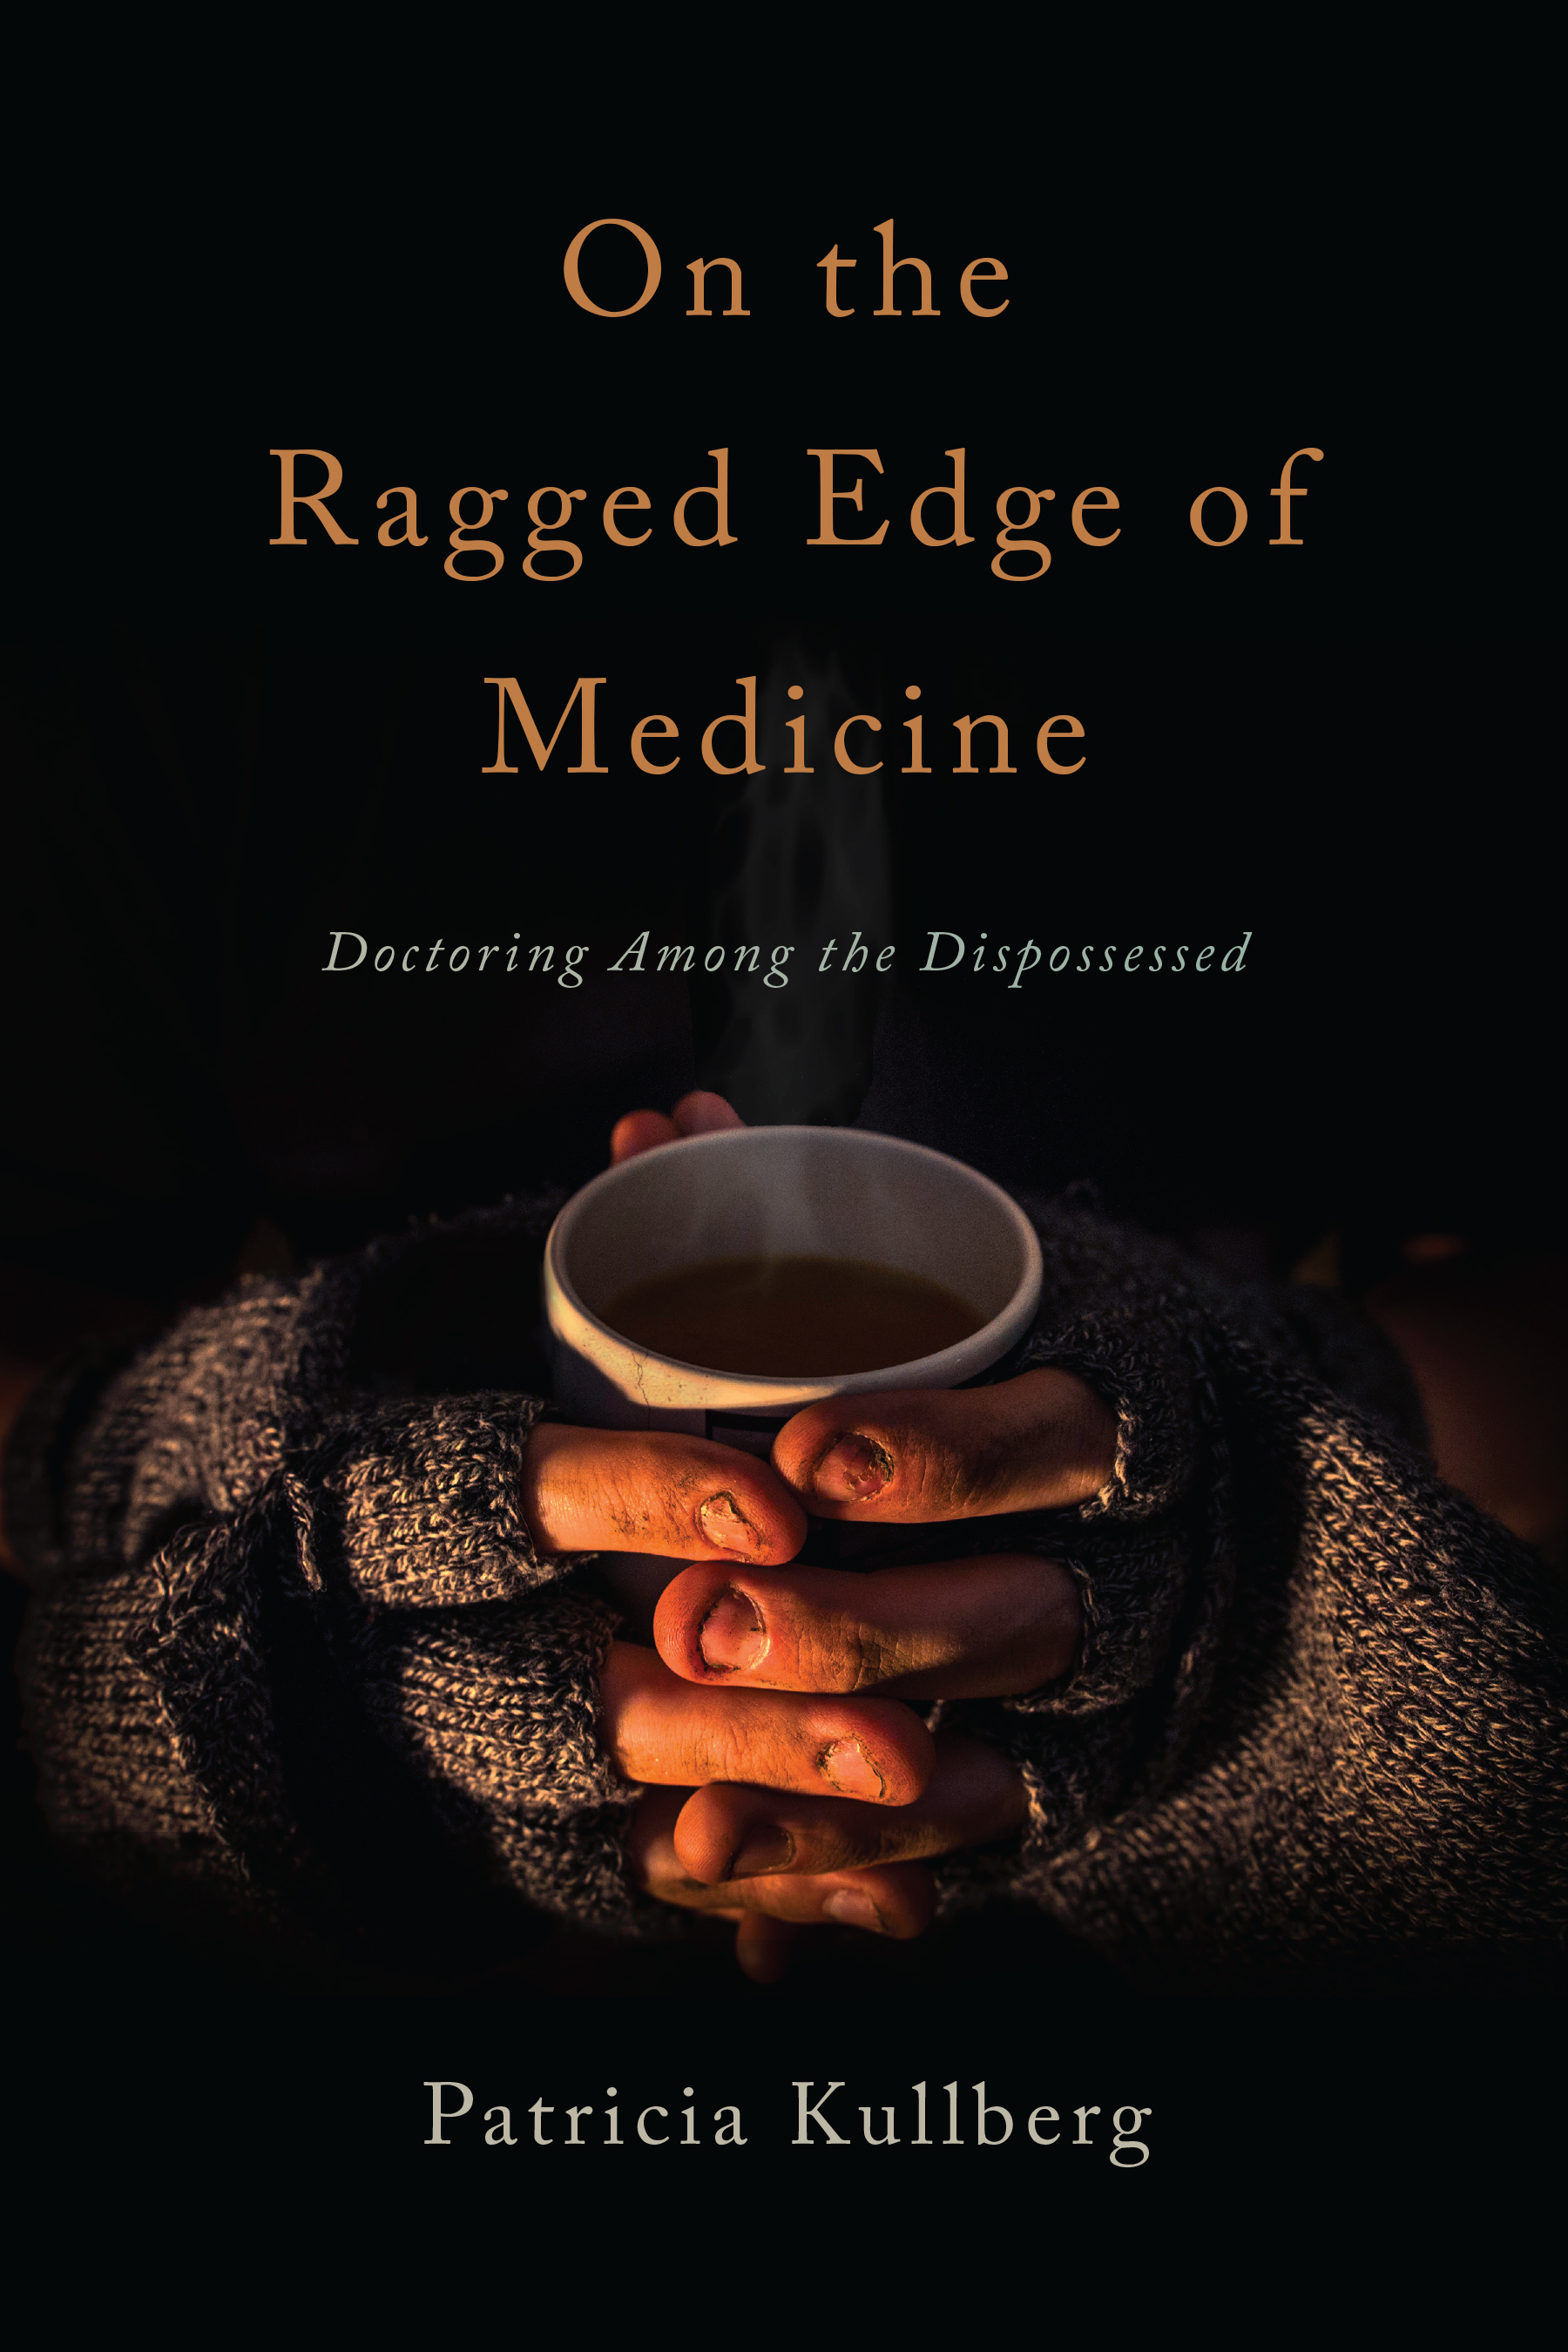 On the Ragged Edge of Medicine by Patricia Kullberg